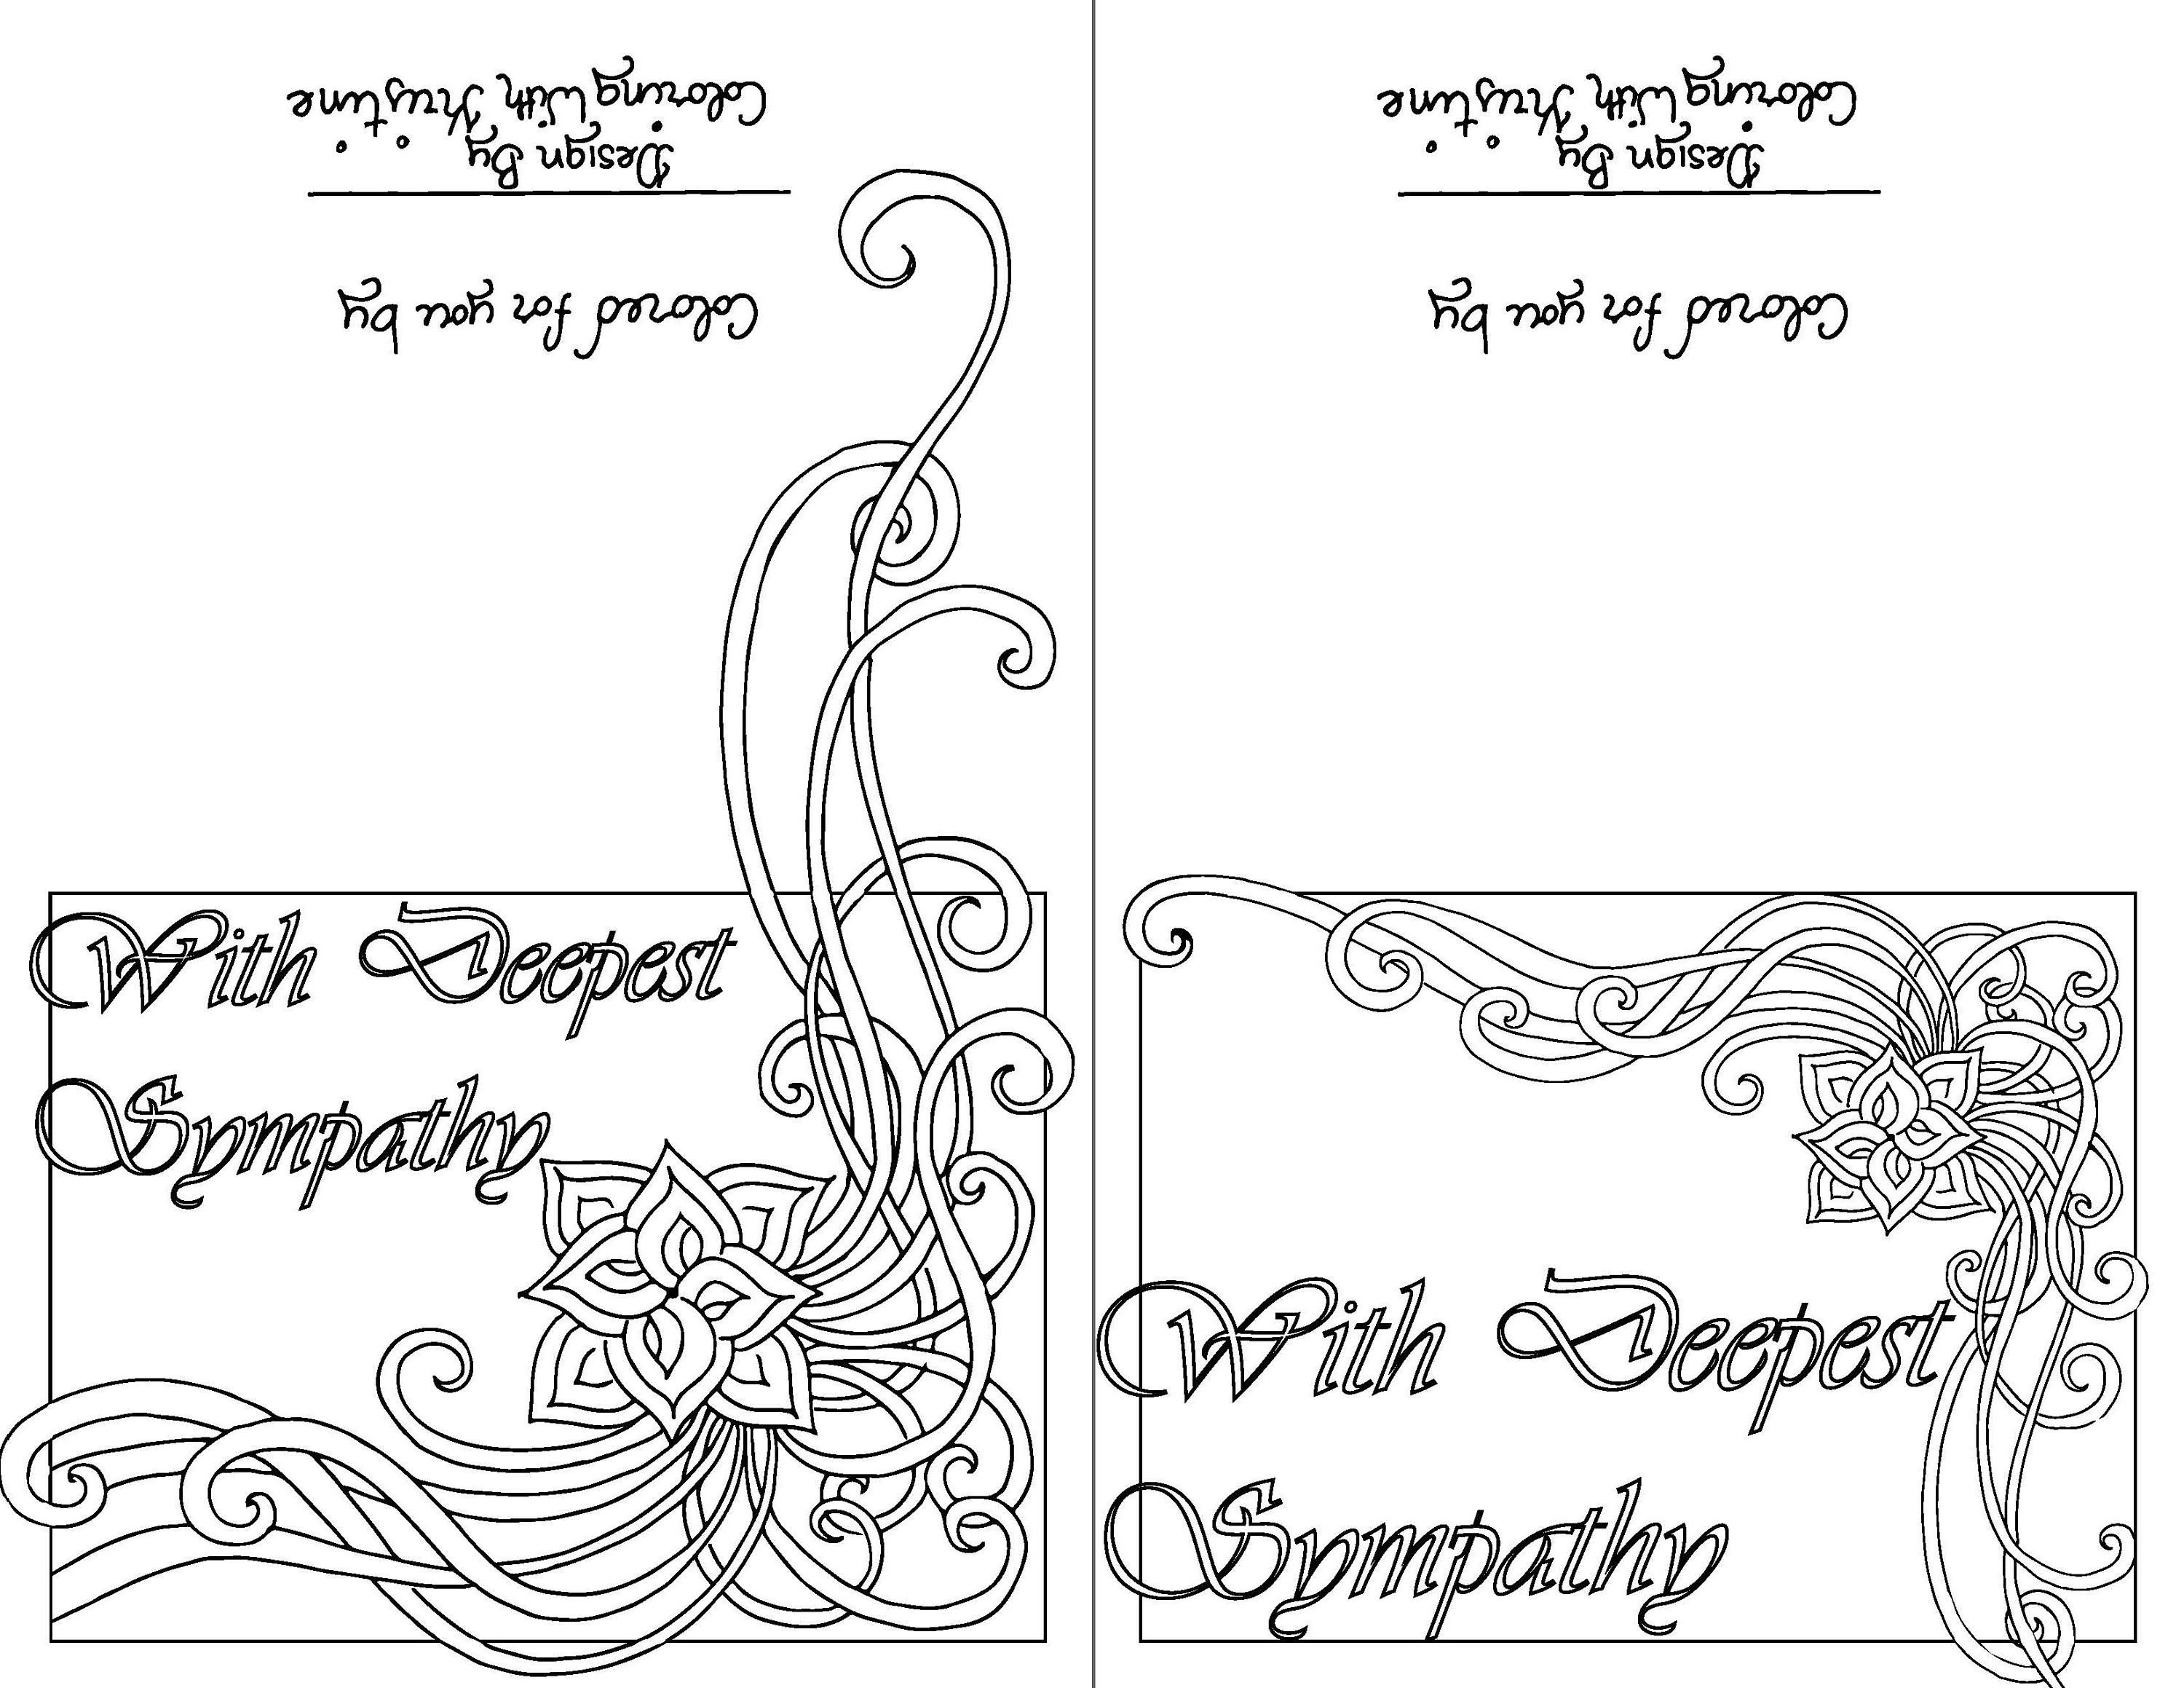 Challenger image pertaining to free printable sympathy cards to color